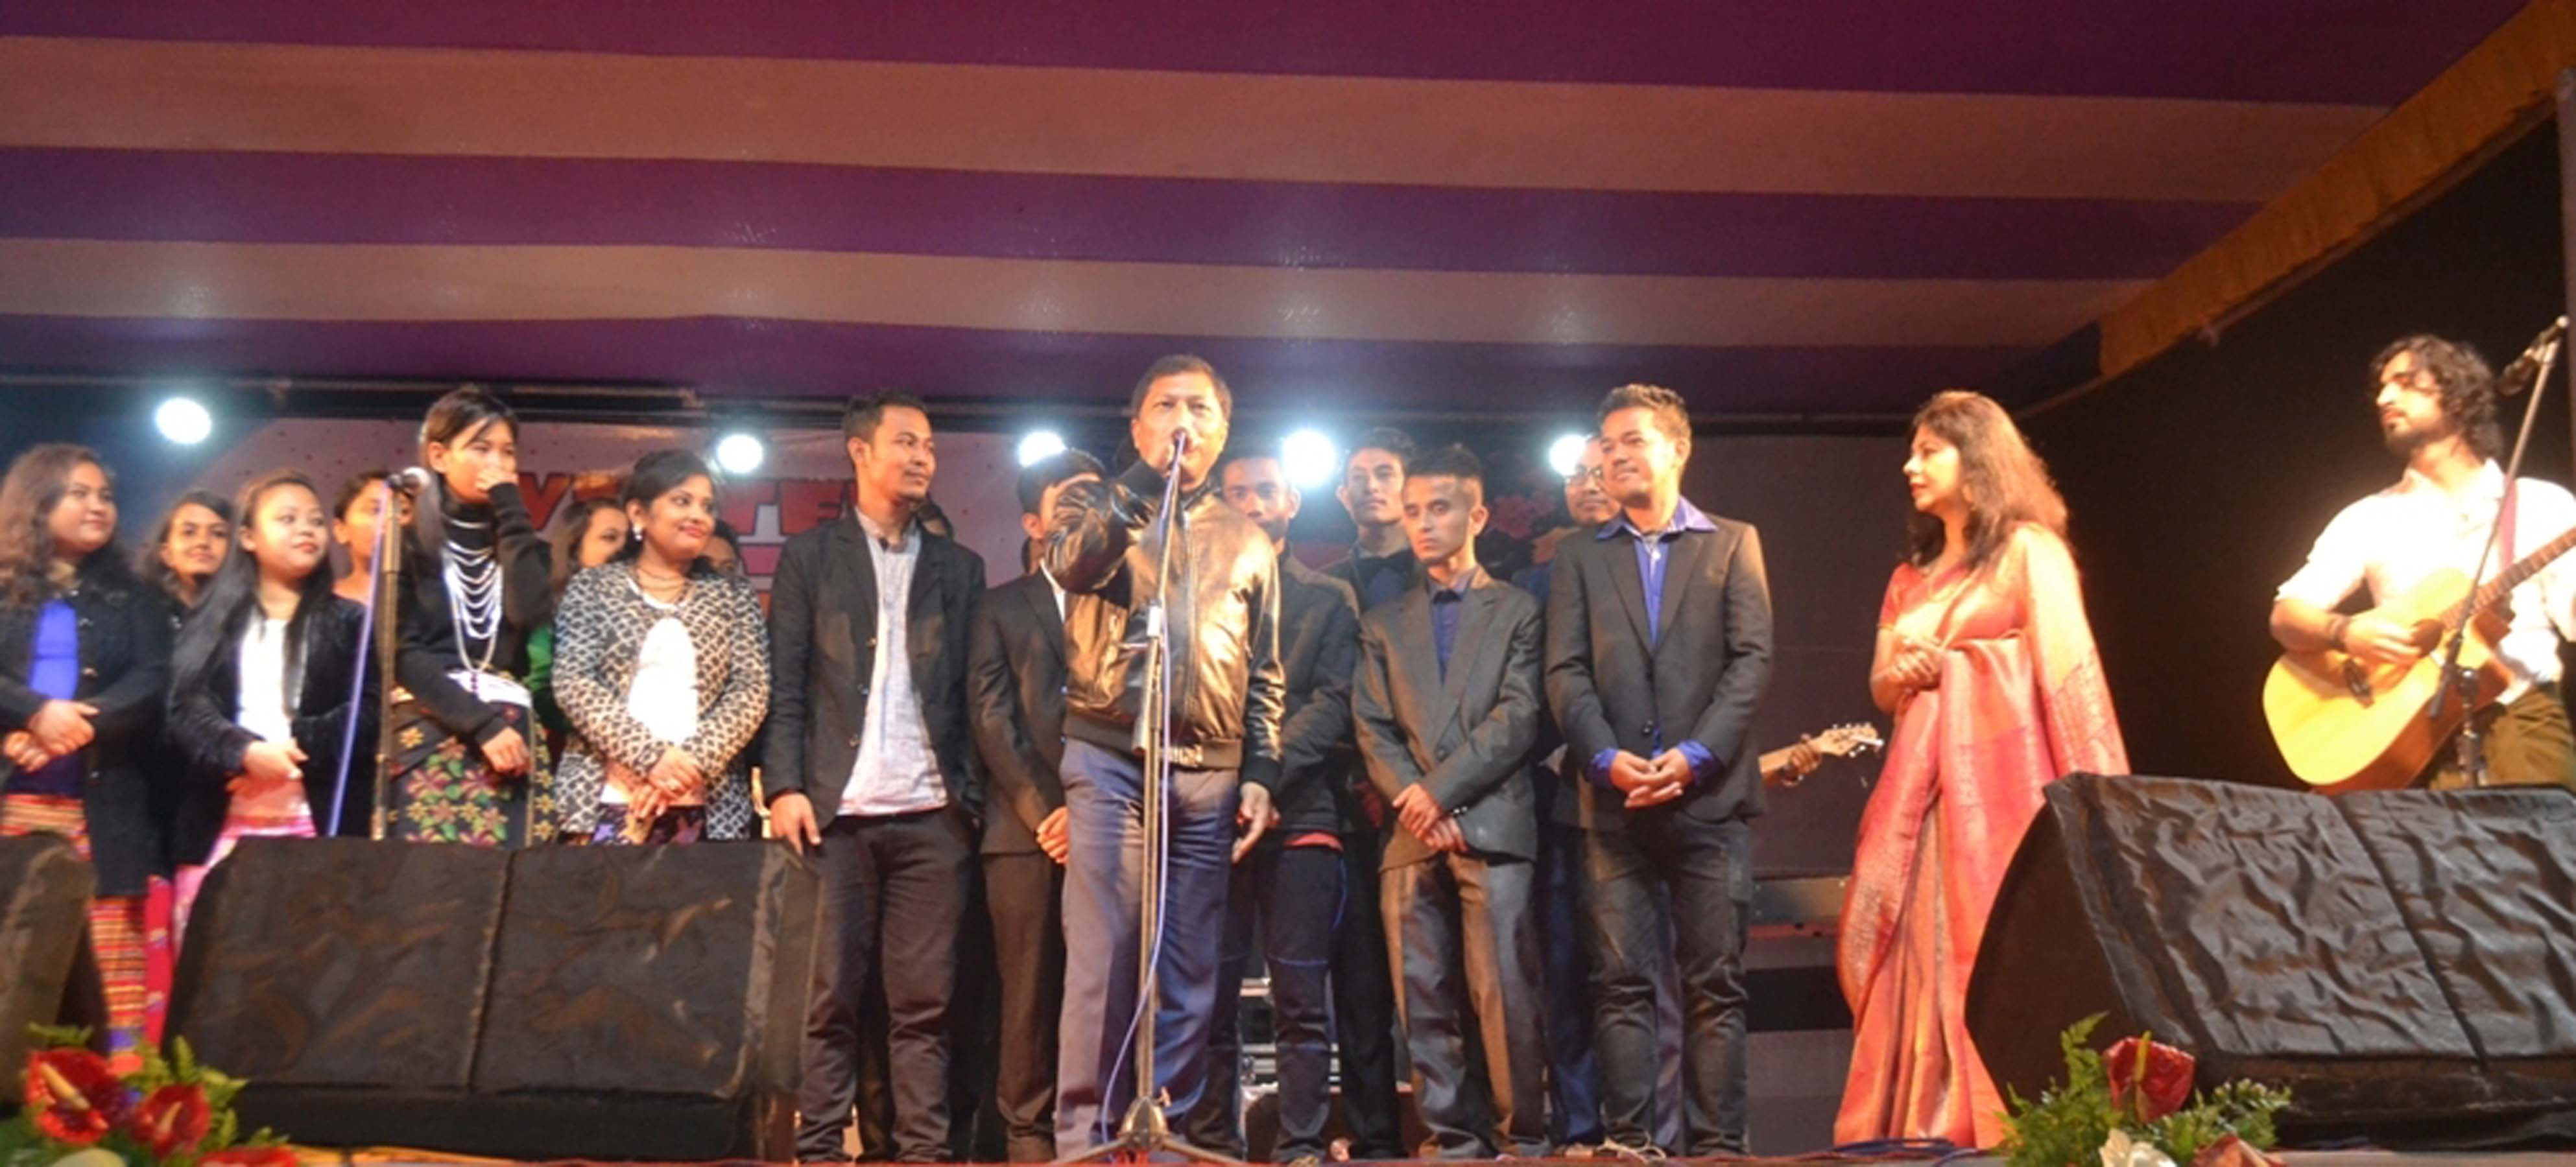 Meghalaya Chief Minister Dr Mukul Sangma joins the team from Centre of Excellence in Classical & Western Music during Tura Winter Youth Festival in Tura. Pix by UB Photos